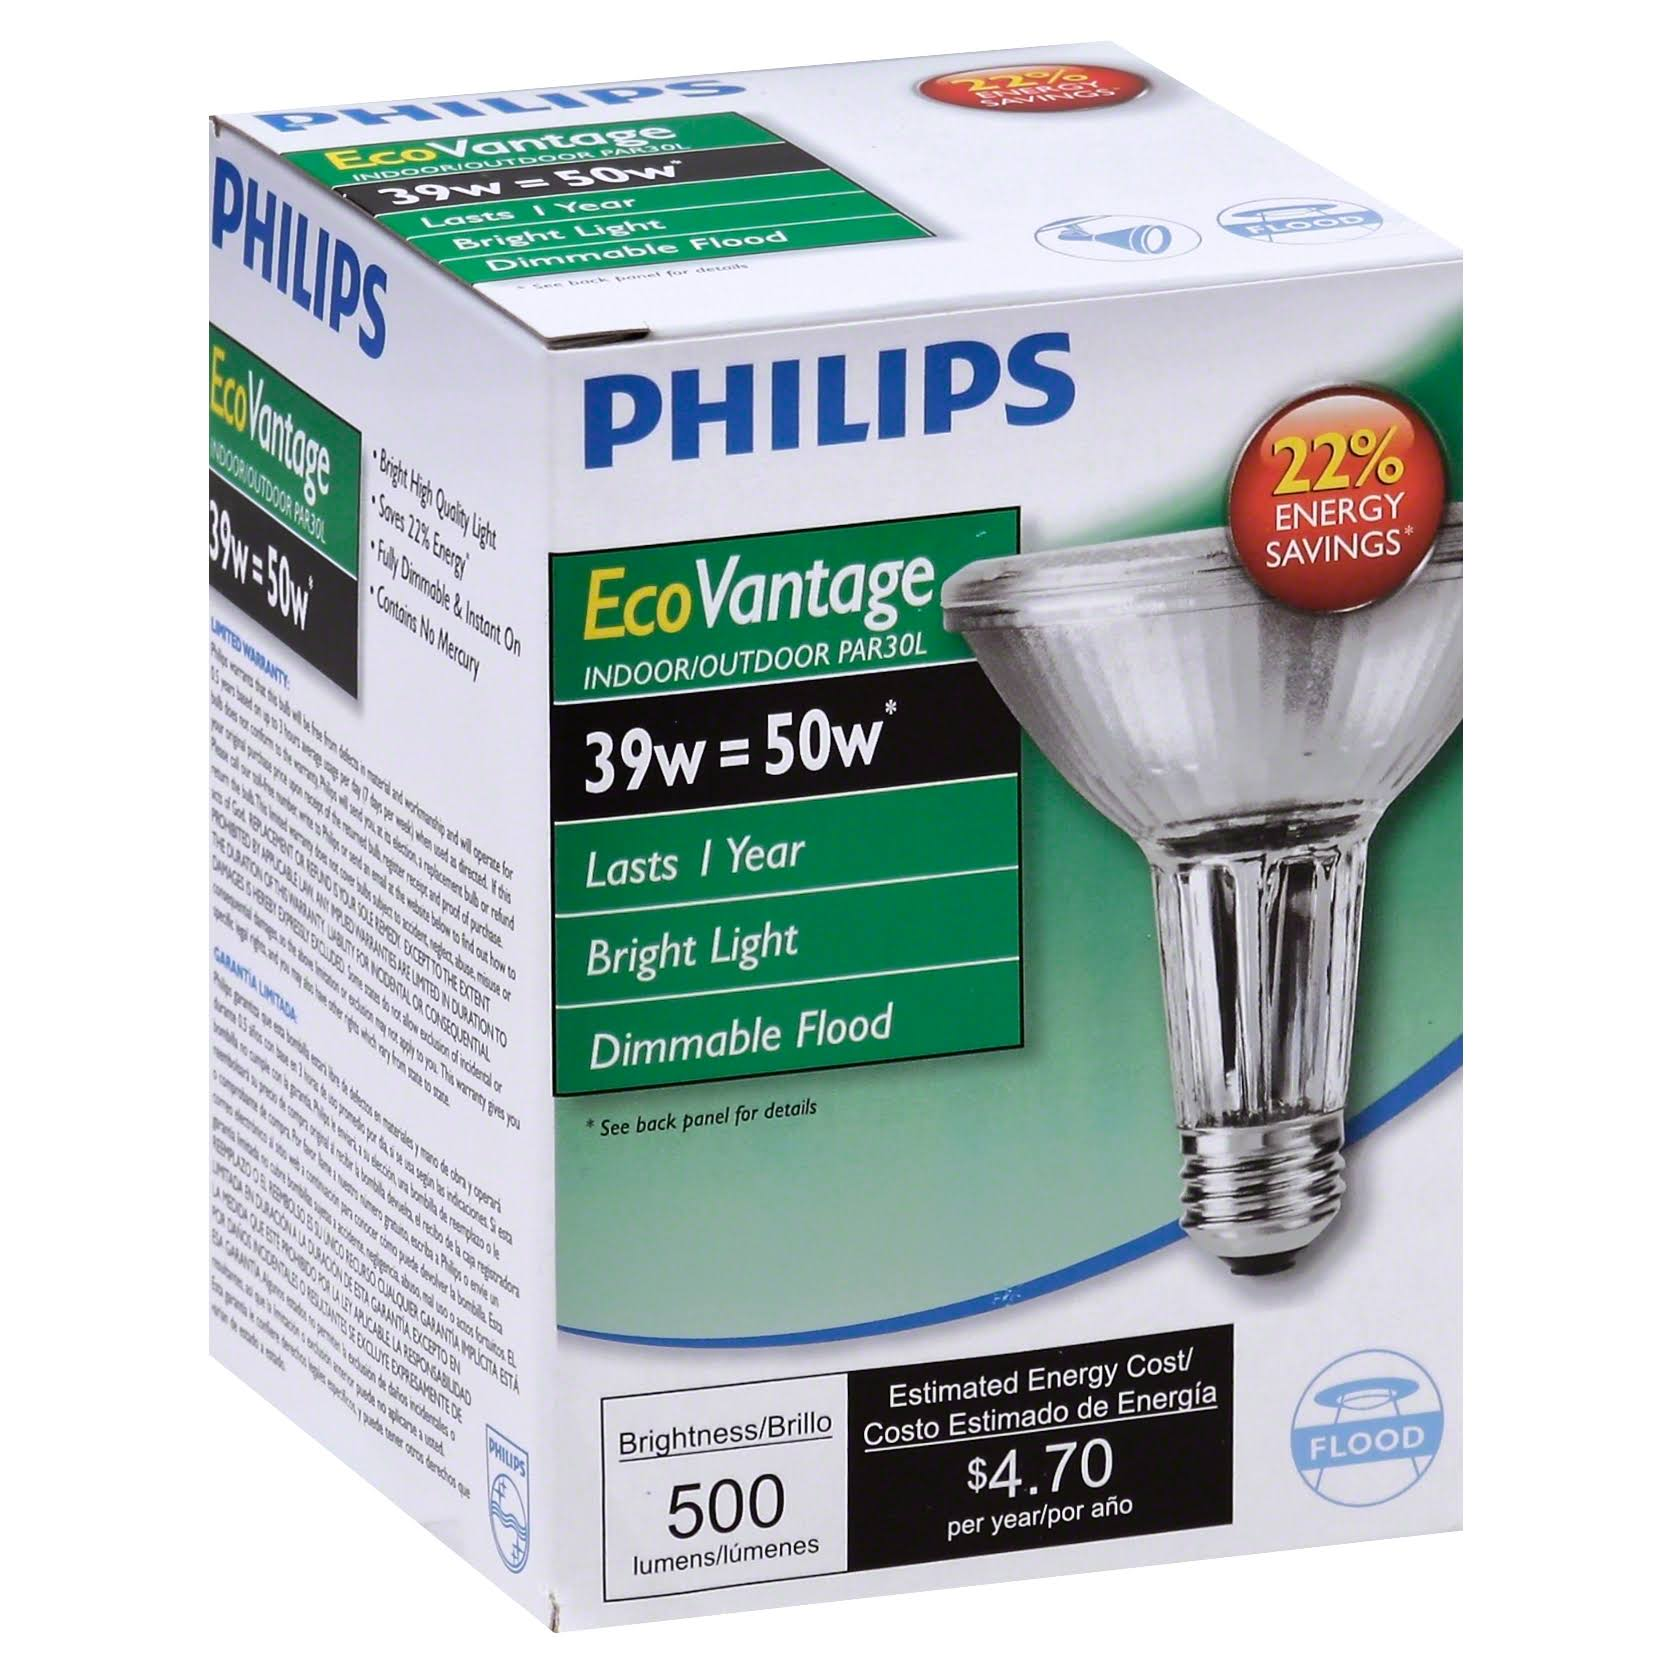 Philips Equivalent PAR30L Indoor and Outdoor Floodlight Bulb - 50W, Halogen, Dimmable